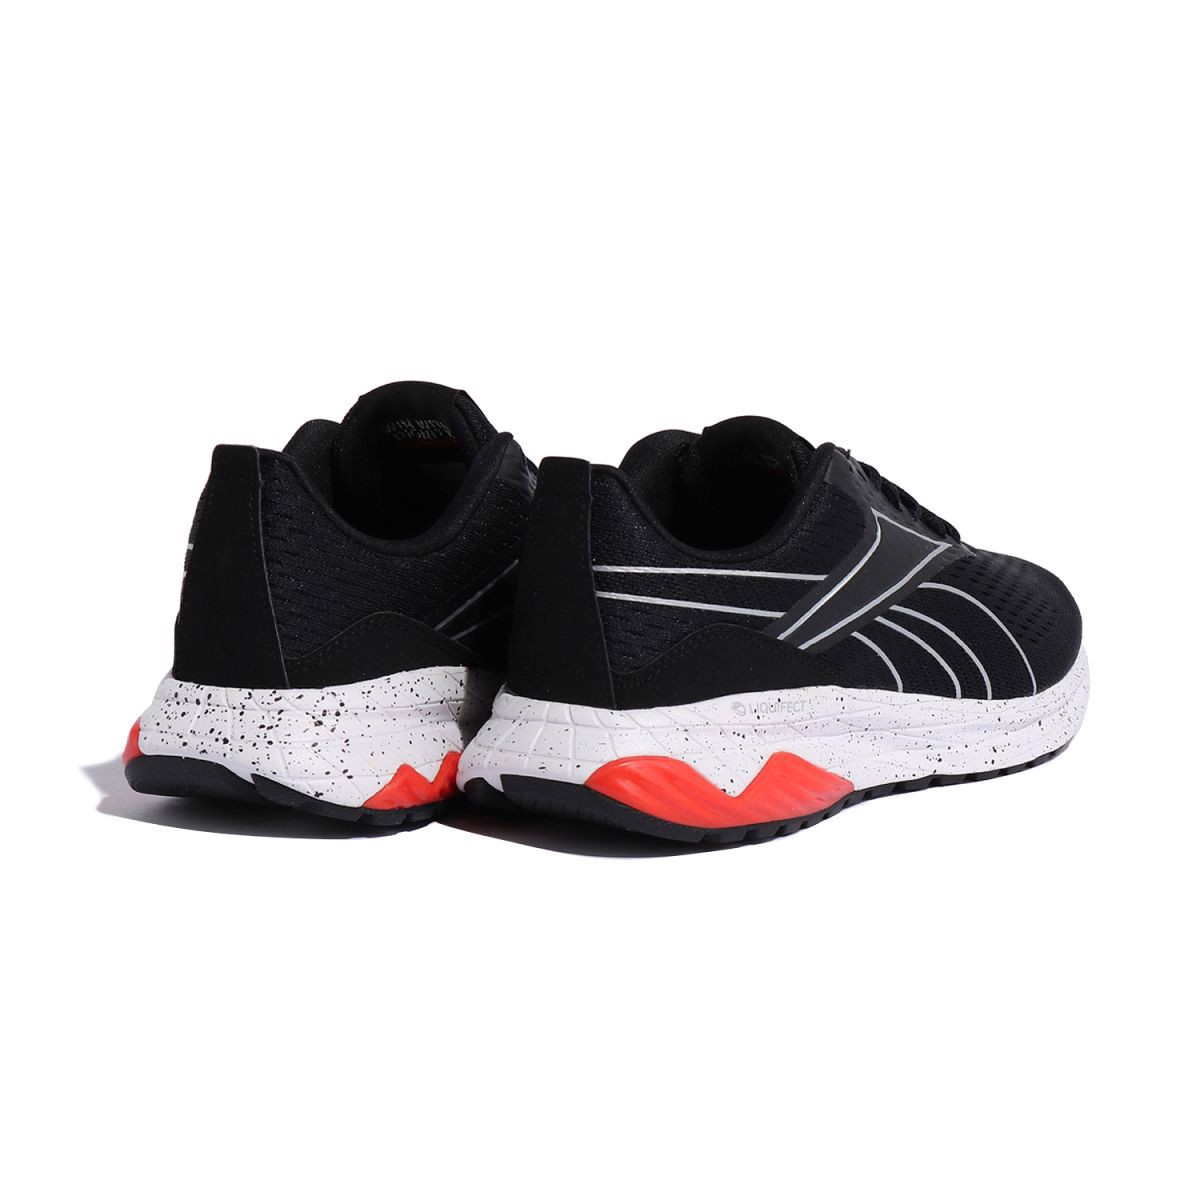 Reebok - Giày thể thao Nữ LIQUIFECT 180 2.0 SPT Fitness Shoes - Low Women Running LI-1899